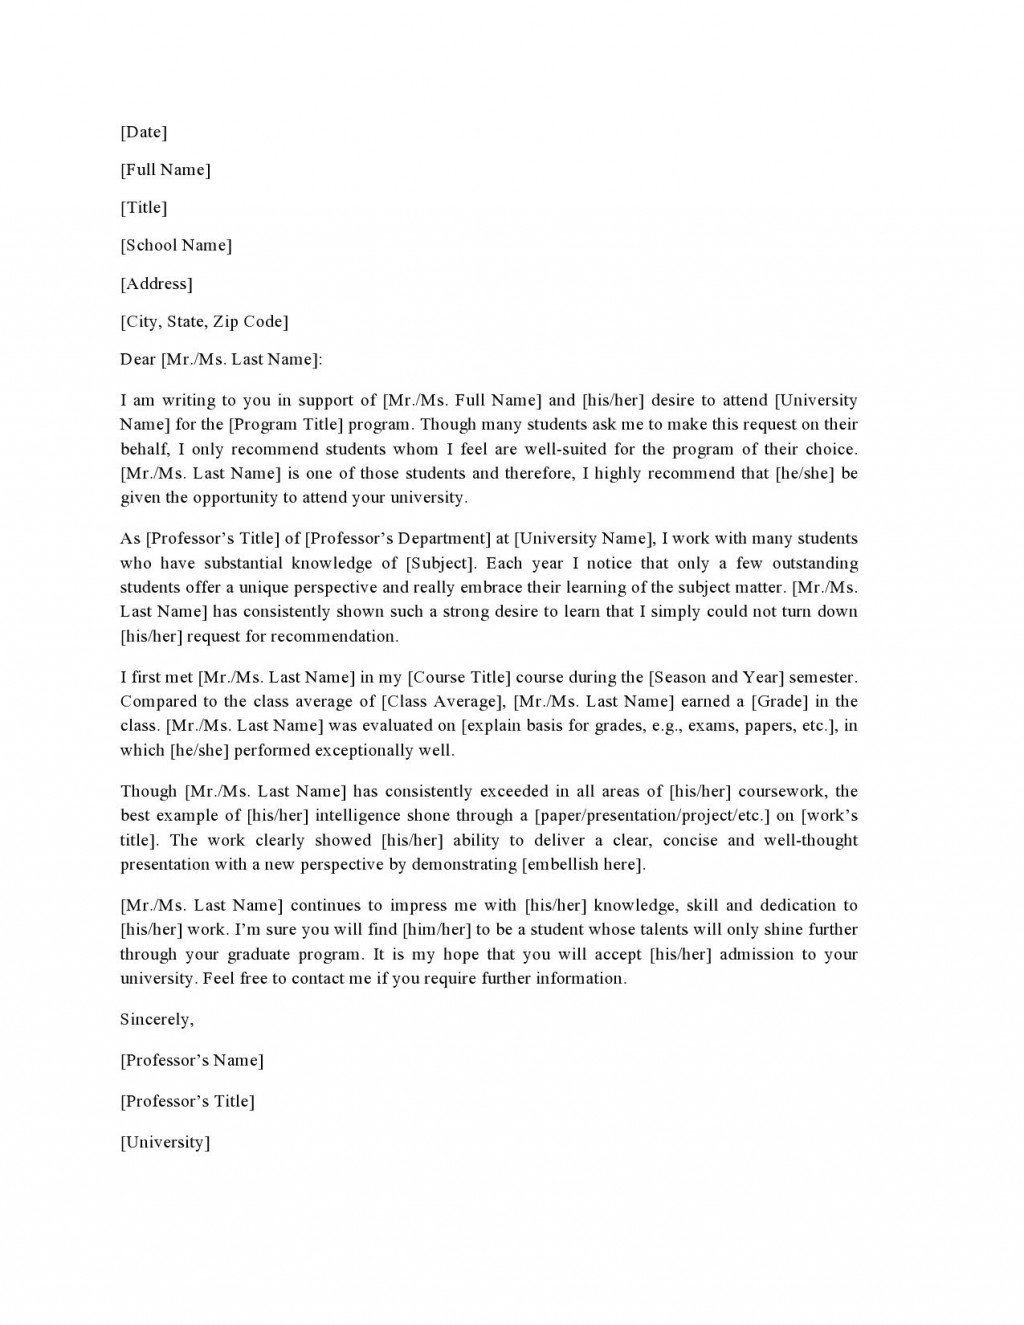 004 Unbelievable Letter Of Recommendation Template For College Student High Definition  Sample From ProfessorLarge